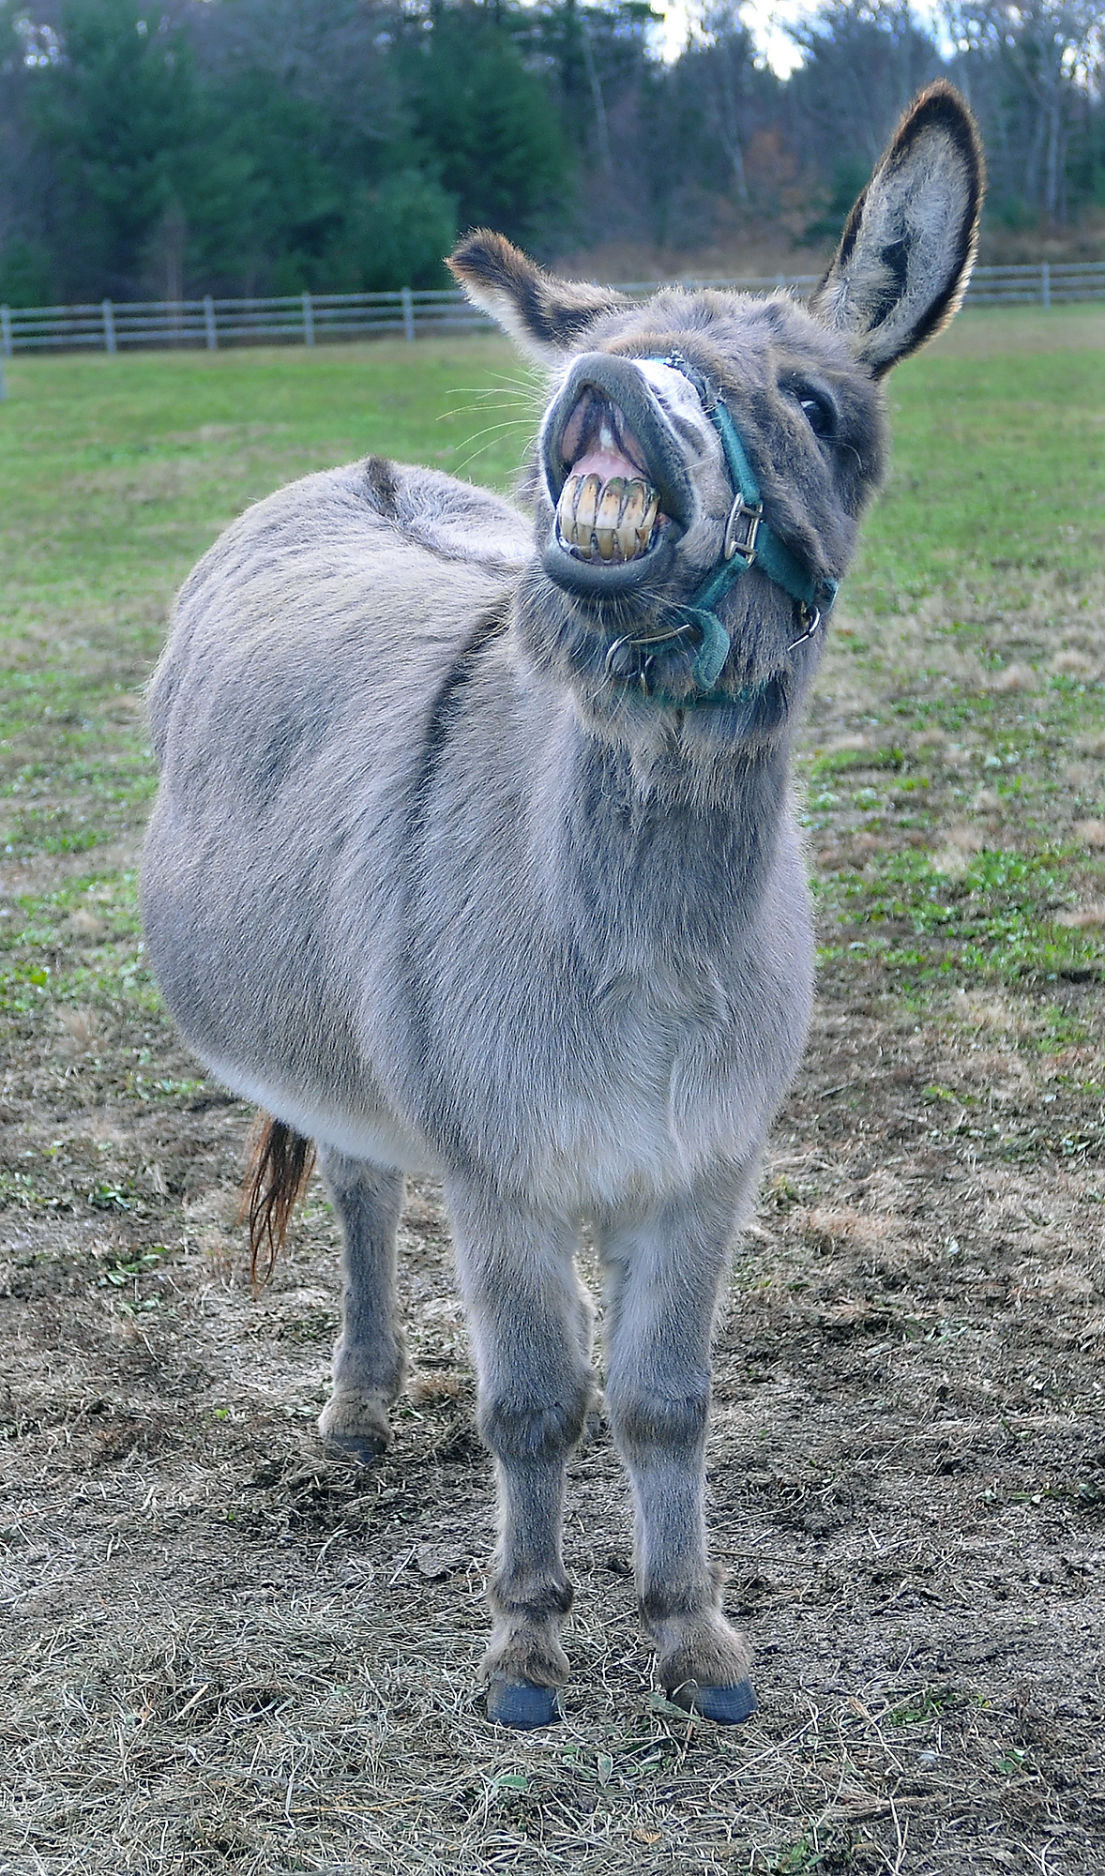 clopper the donkey will return to lasalette local news